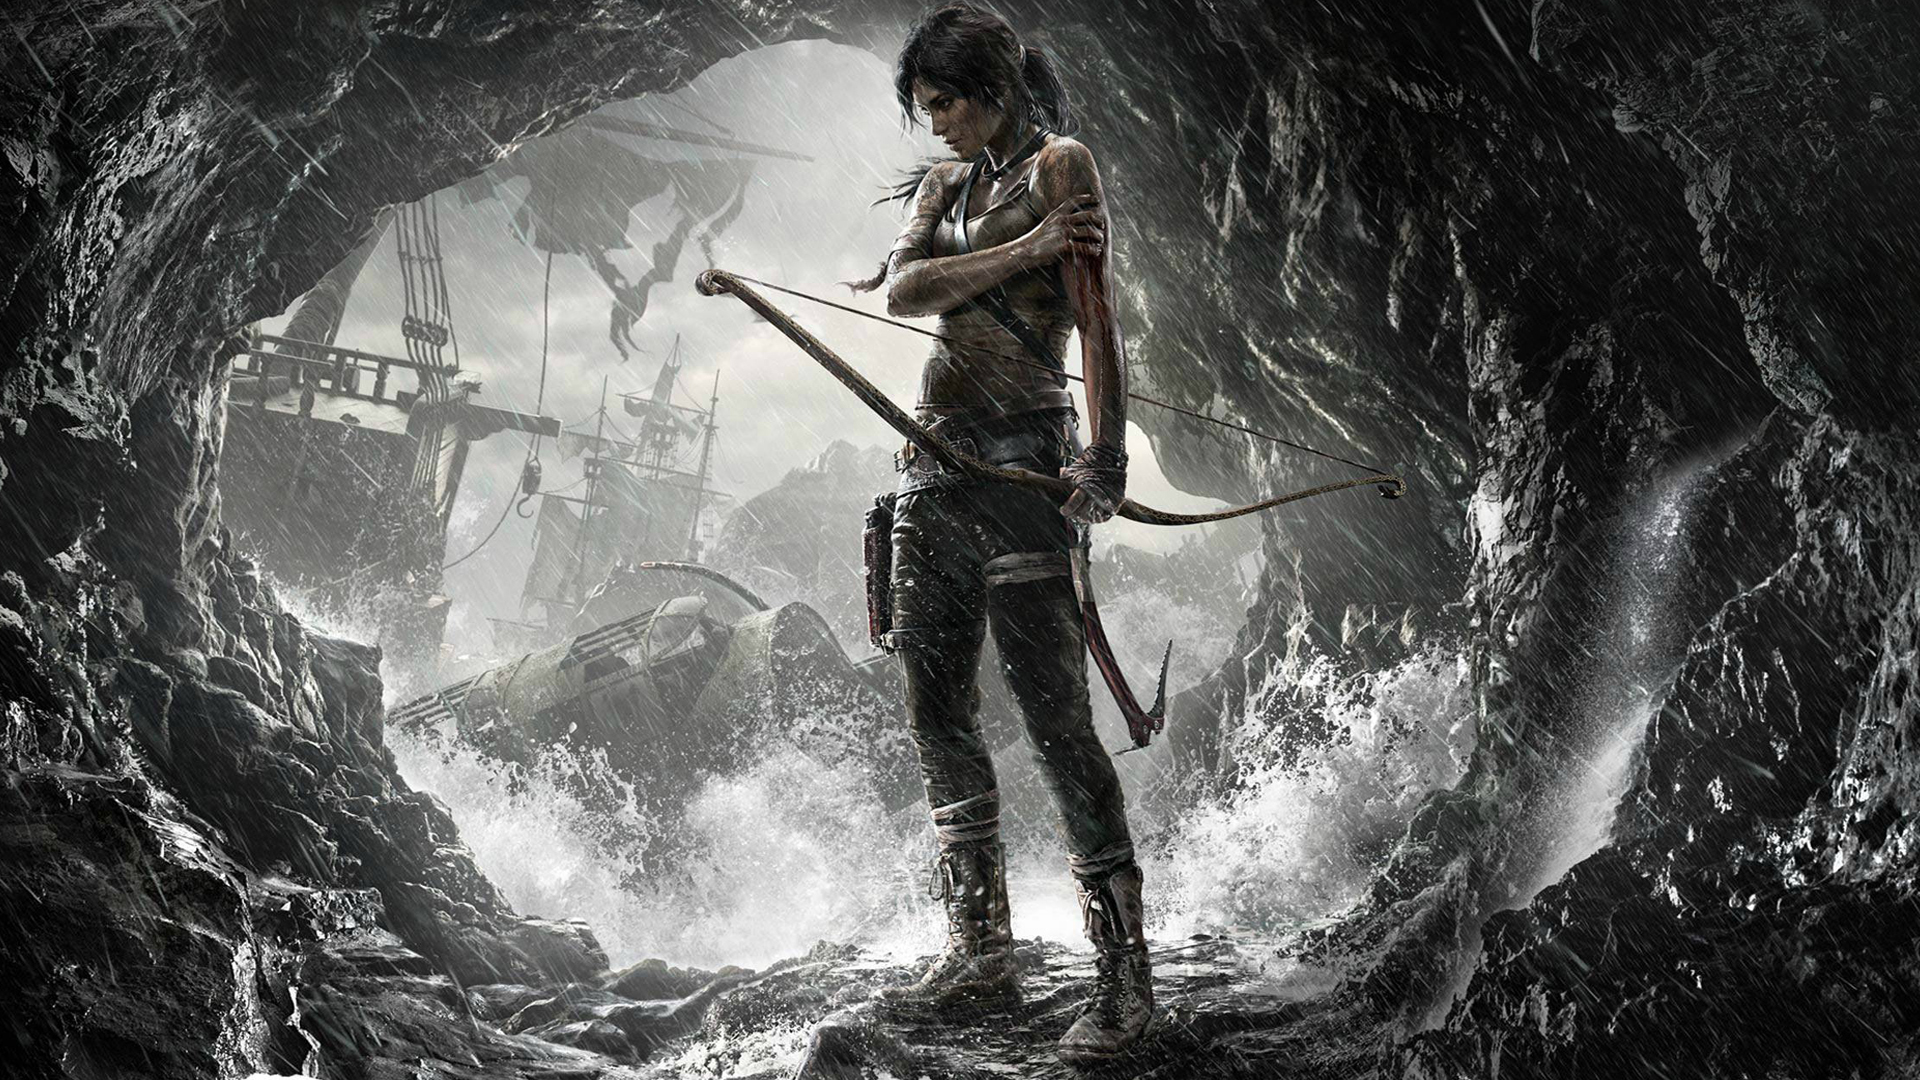 Tomb Raider vs. Uncharted: Exactly How Similar Are They?